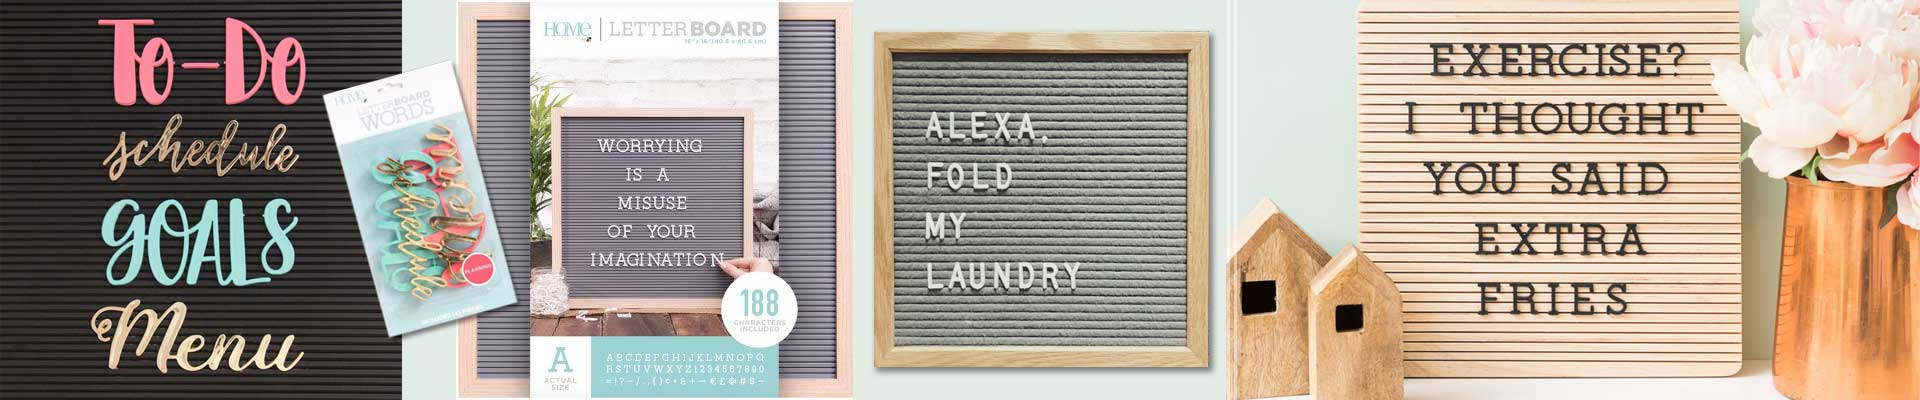 The hottest decor item this year,Letterboards